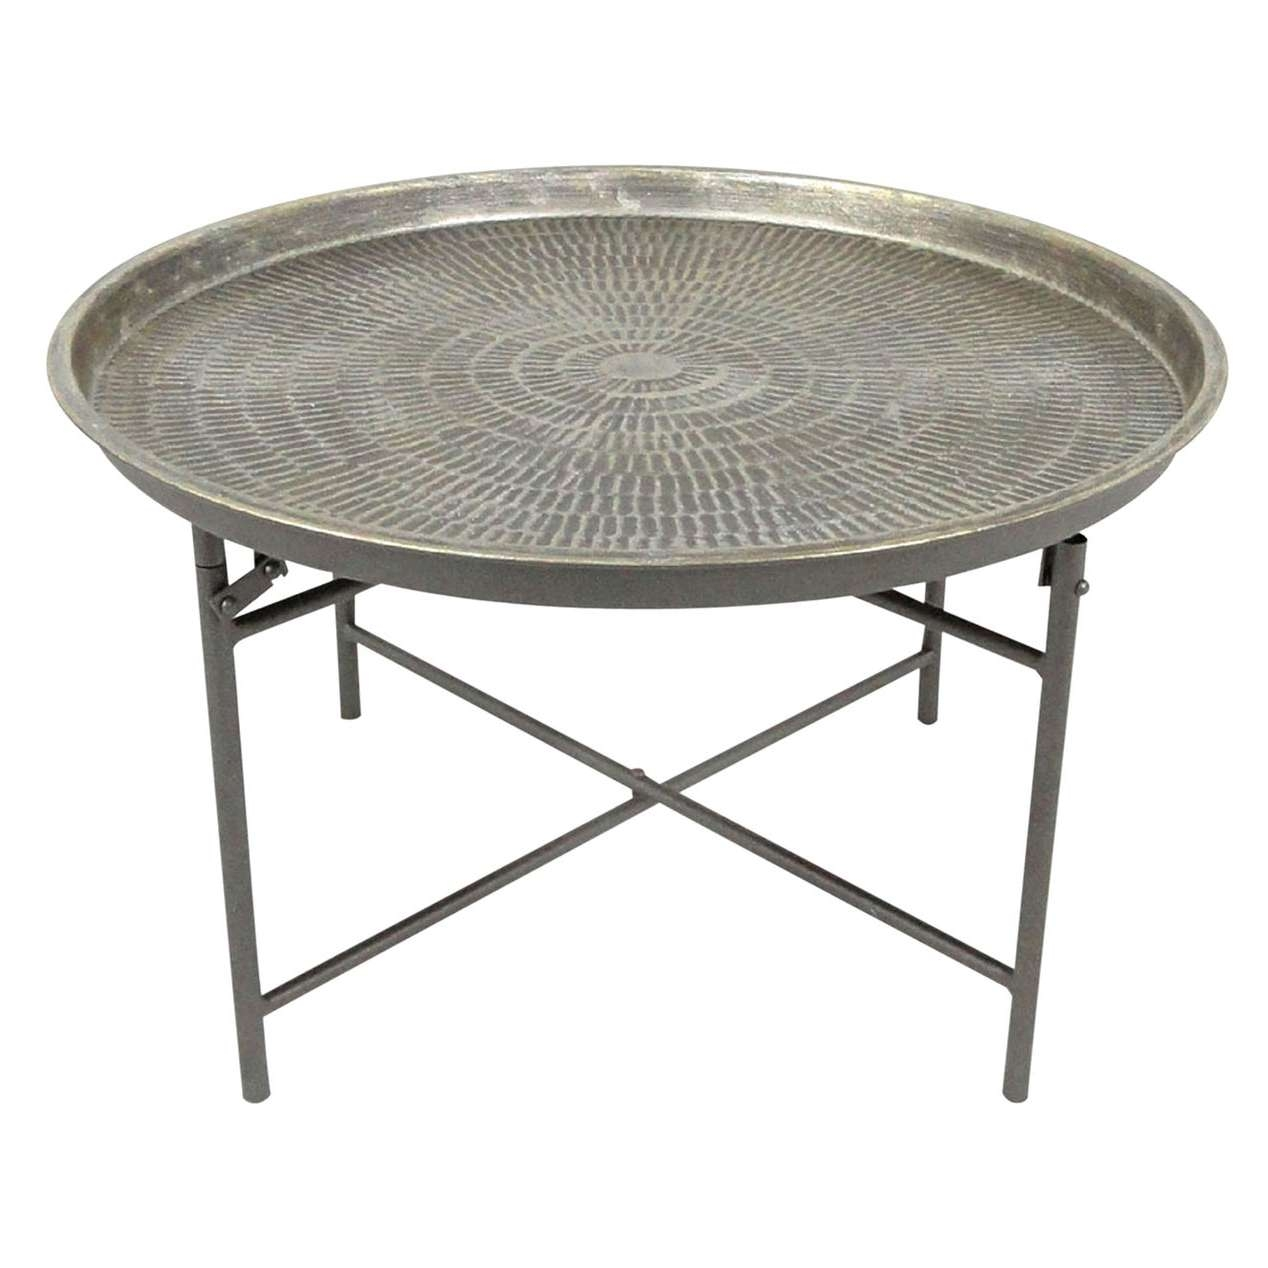 Uncategorized : Metal Round Coffee Table With Impressive Black Inside Newest Metal Round Coffee Tables (Gallery 4 of 20)